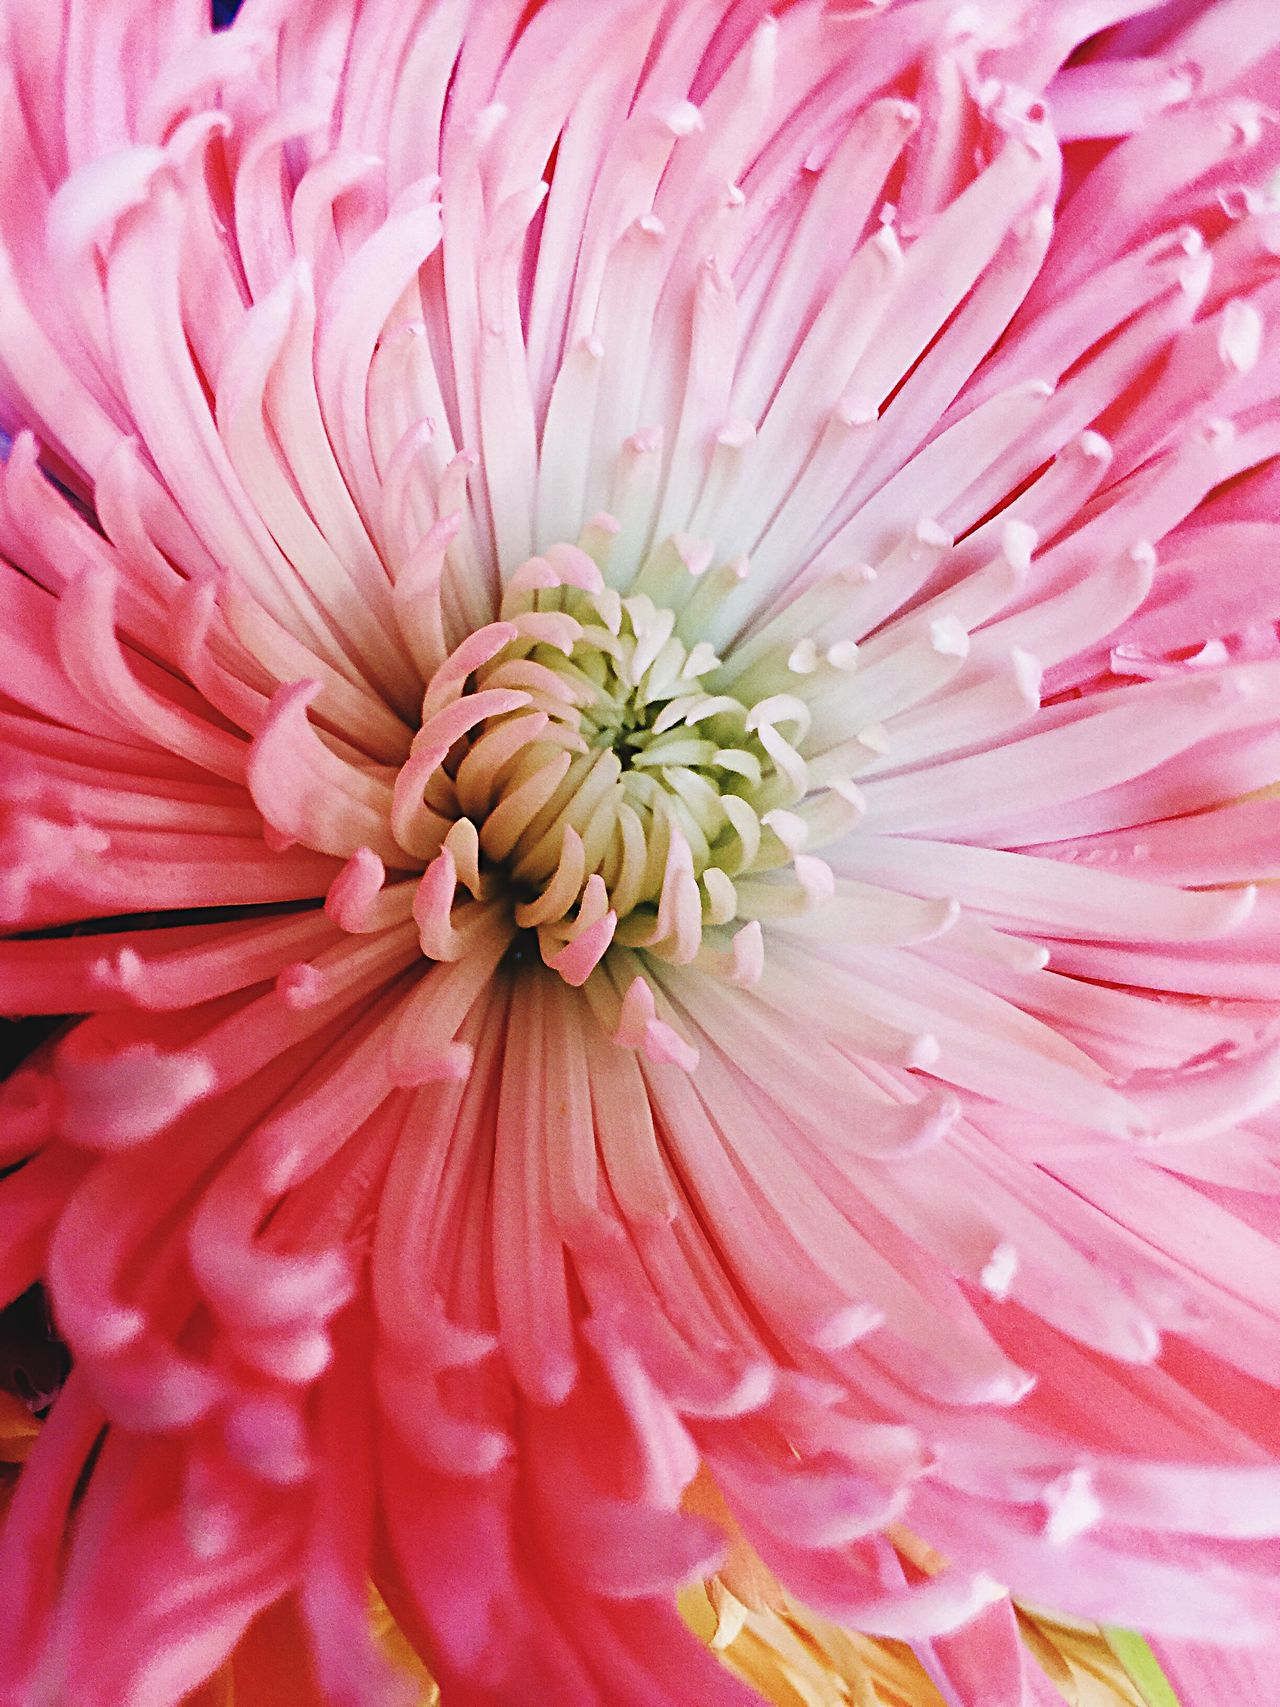 Pink chrysanthemum Flower Petal Flower Head Fragility Beauty In Nature Freshness Nature Full Frame Pink Color Close-up Dahlia Blooming No People Growth Pollen Chrysanthemum Backgrounds Plant Day Outdoors Iphonephotography Fresh On Eyeem